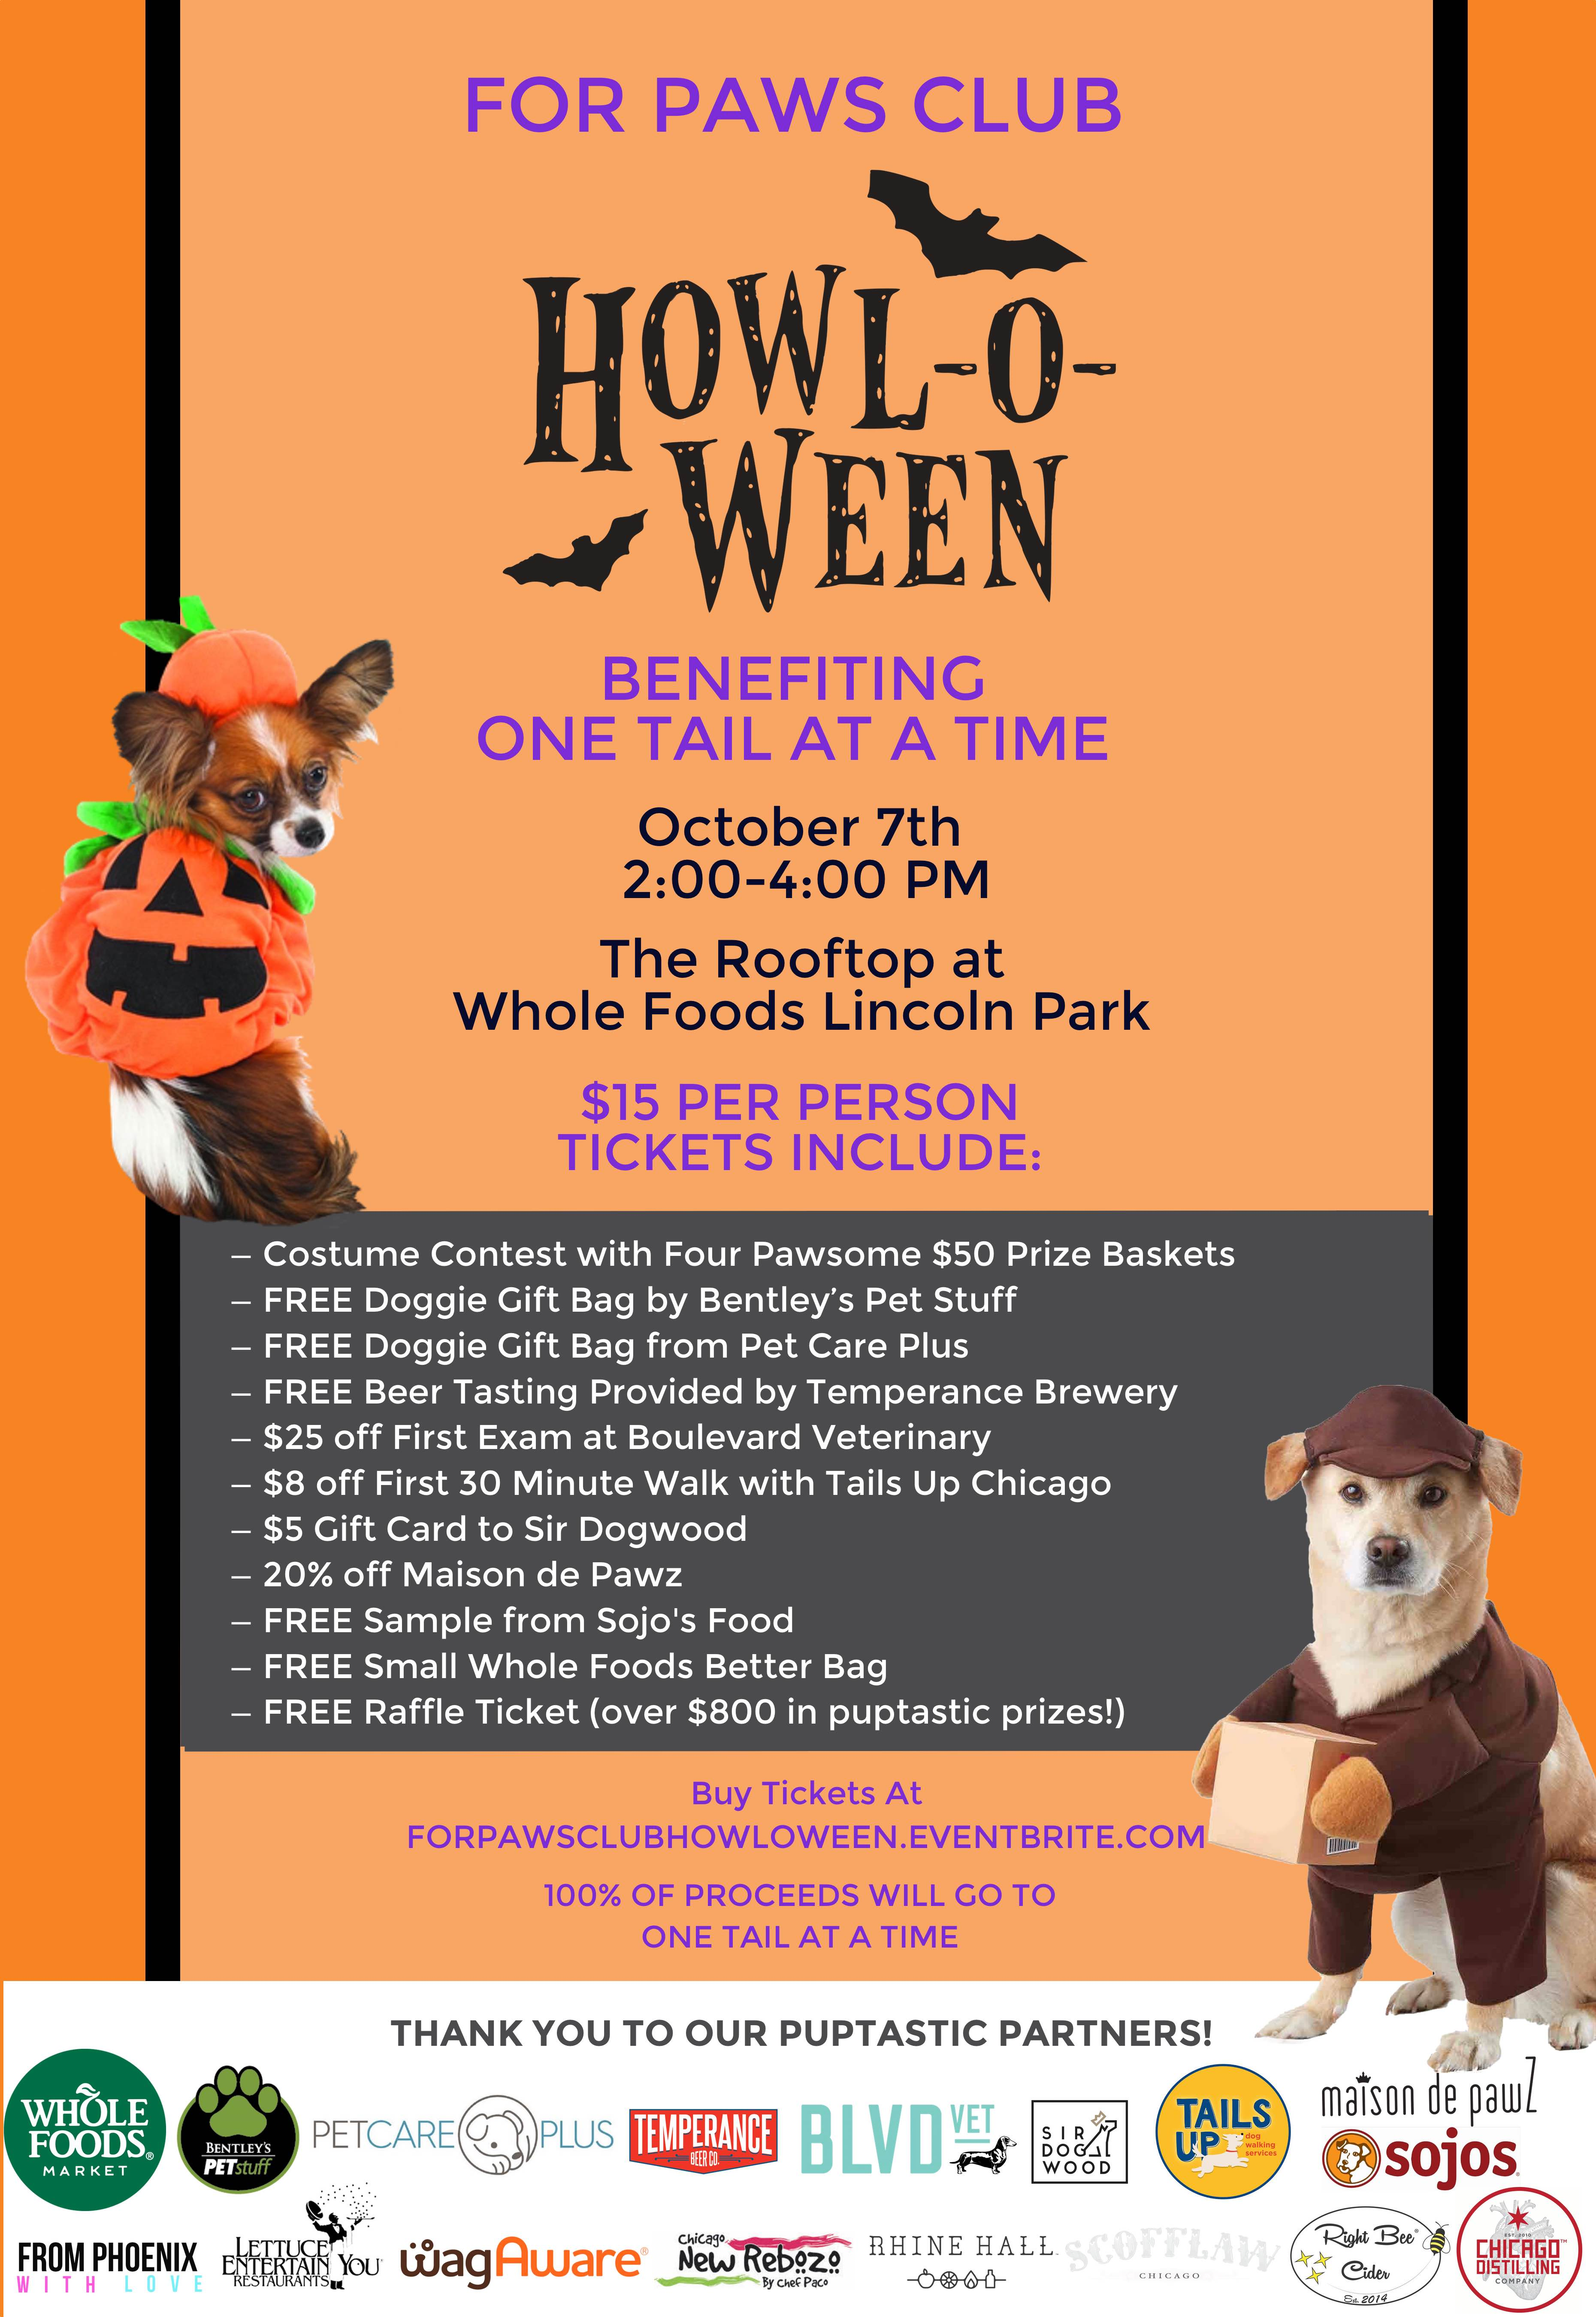 Howl-o-ween Pawty!